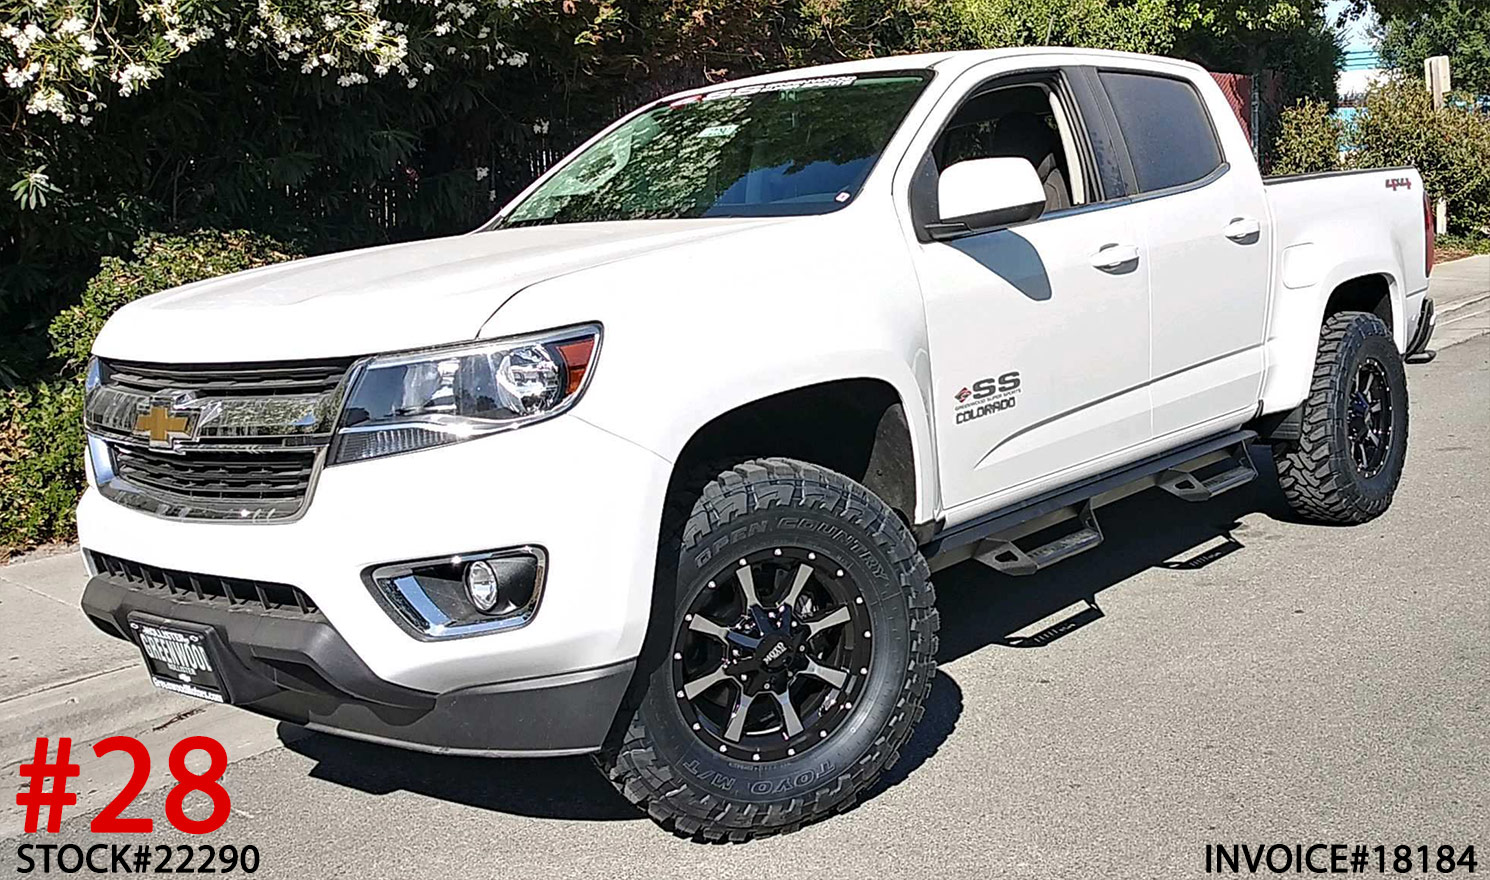 2020 CHEVY COLORADO #22290